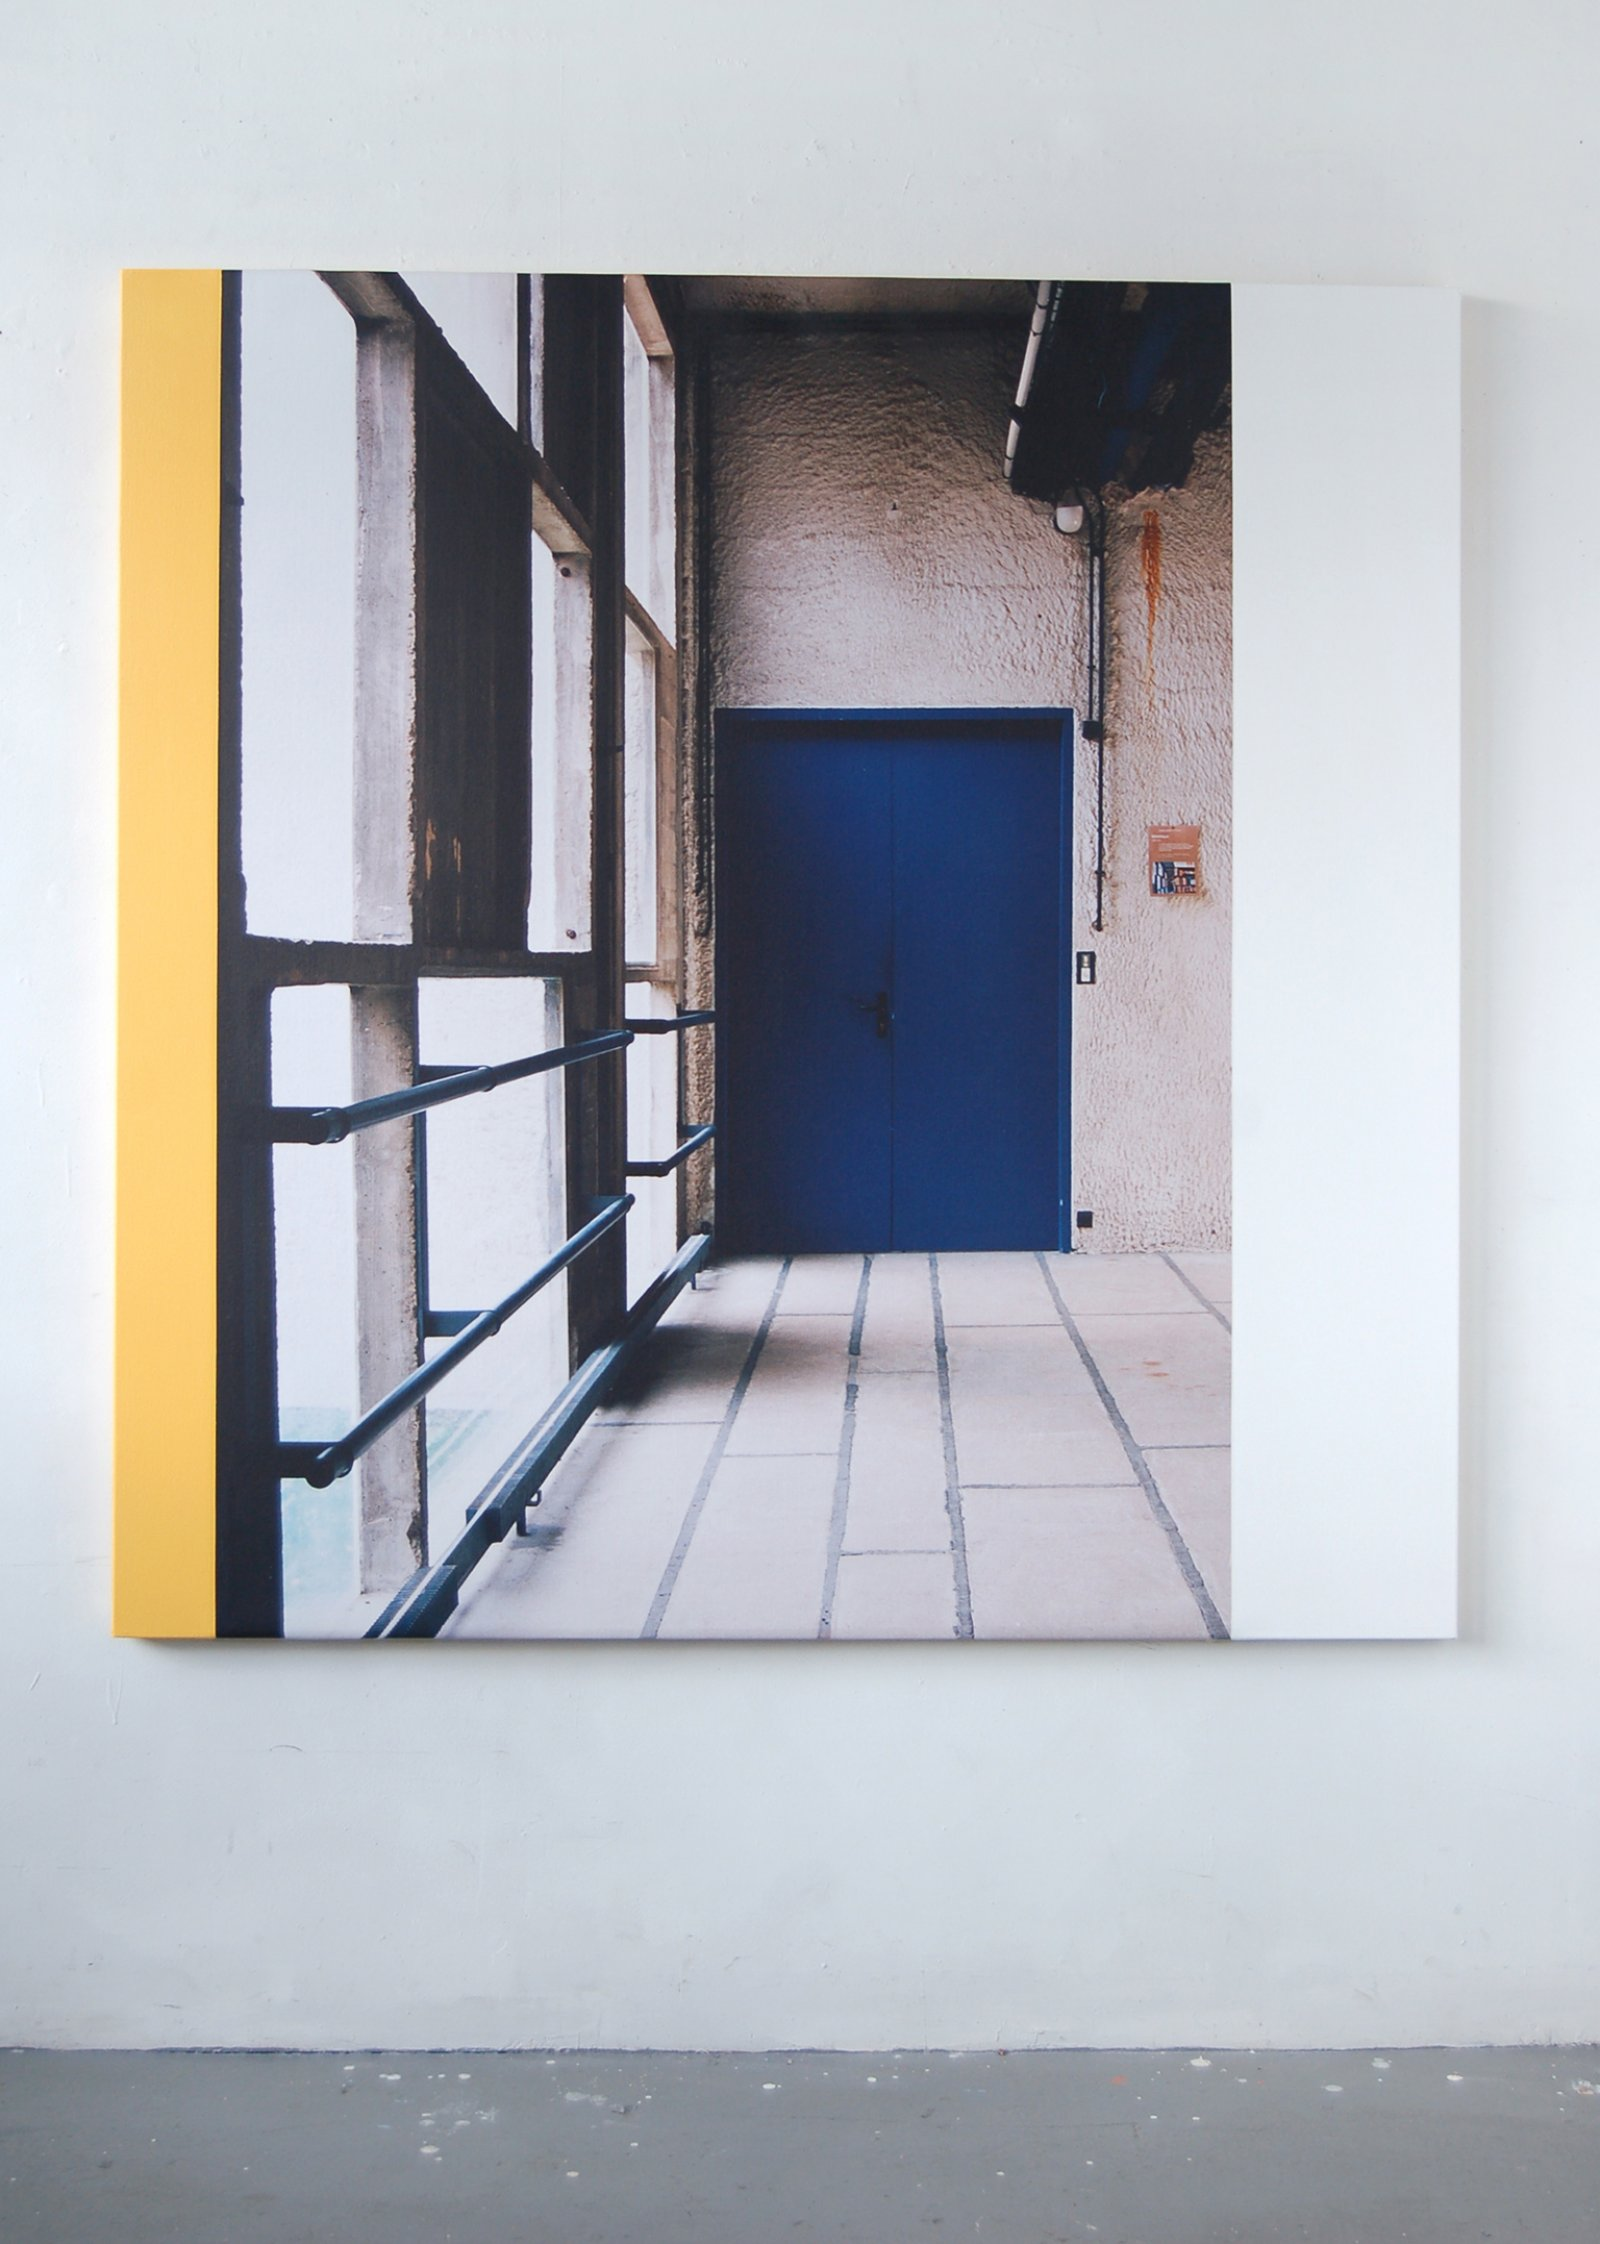 Ian Wallace,La Tourette (The Passage), 2006, photolaminate and acrylic on canvas, 60 x 60 in. (152 x 152 cm)